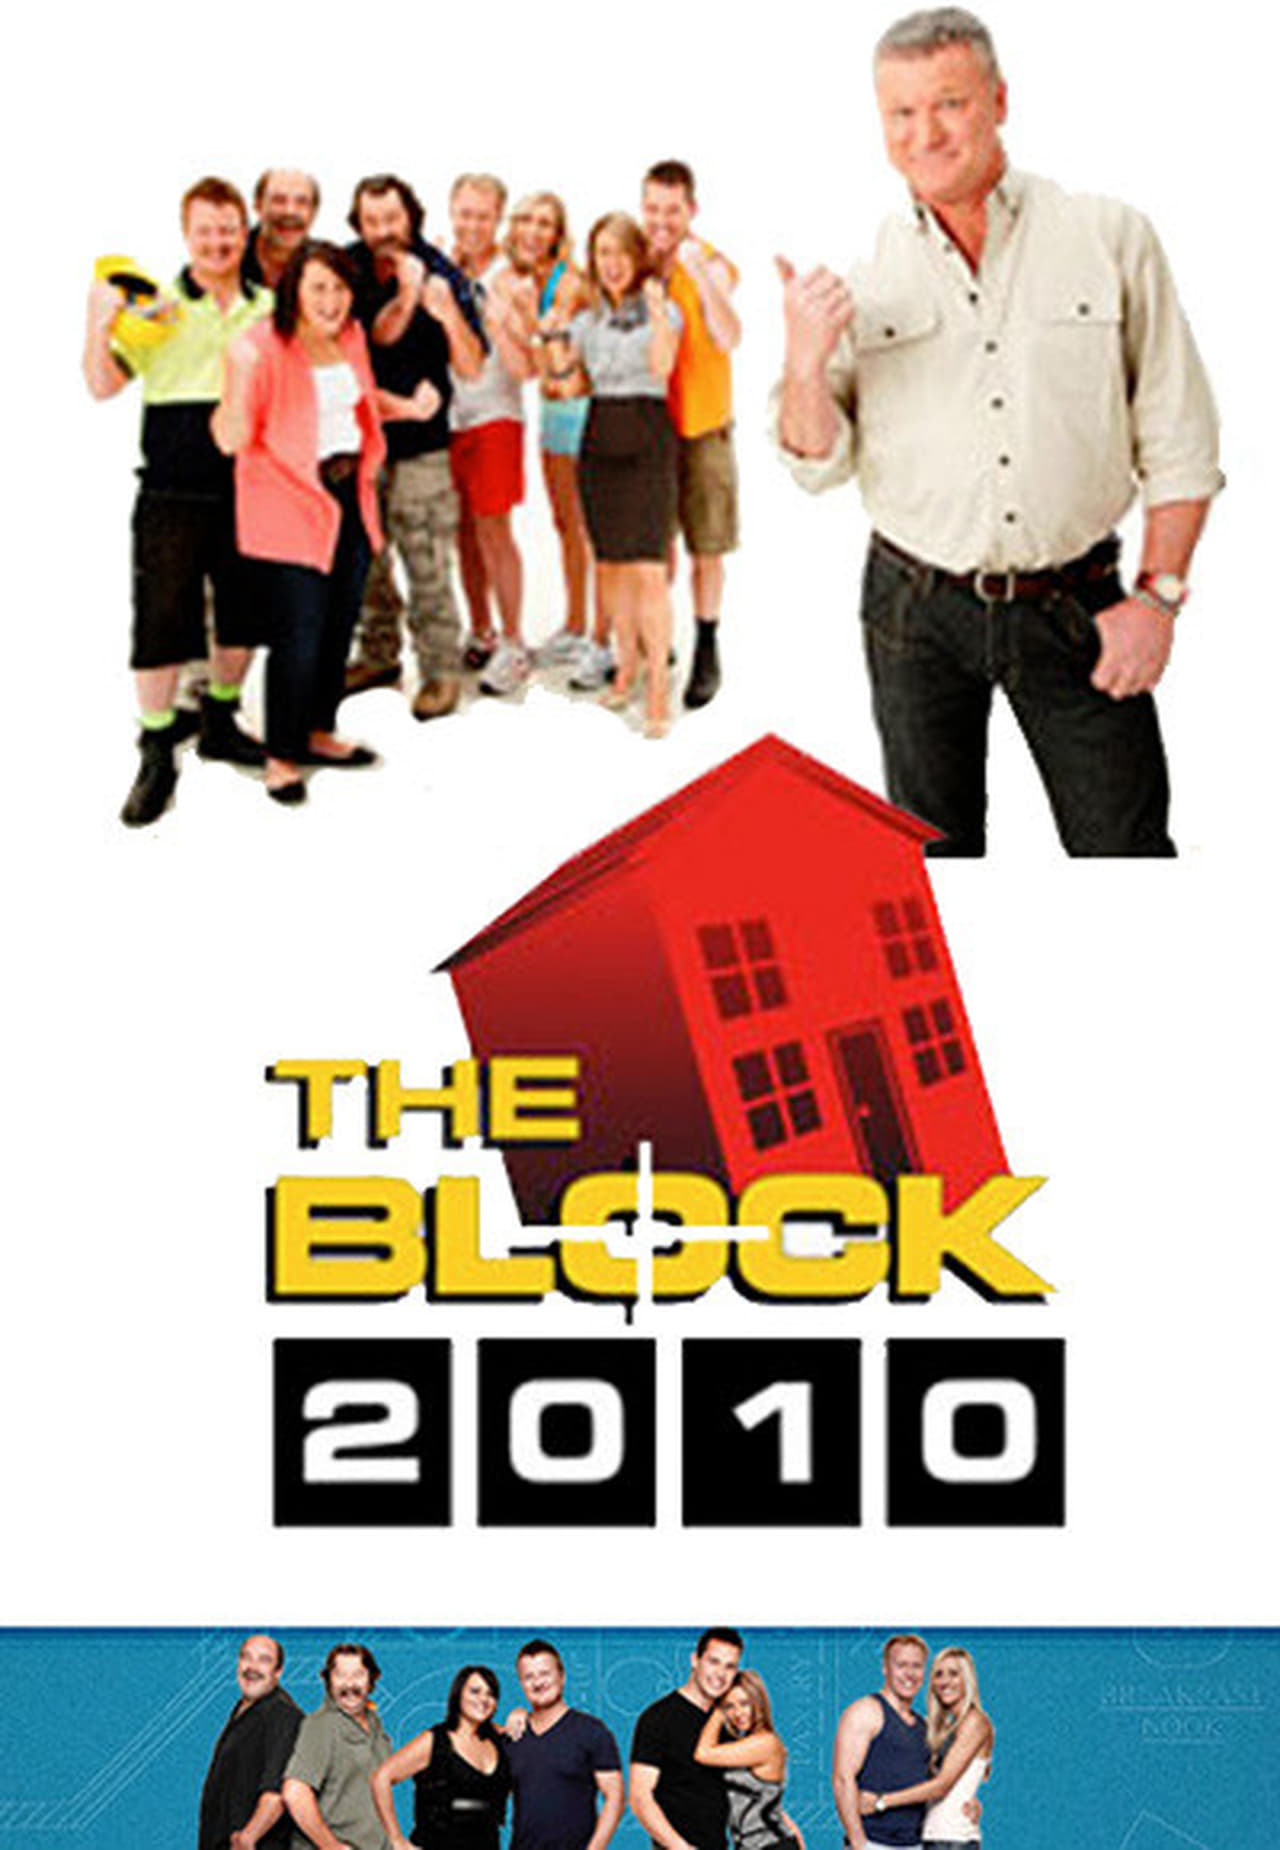 Putlocker The Block Season 3 (2010)